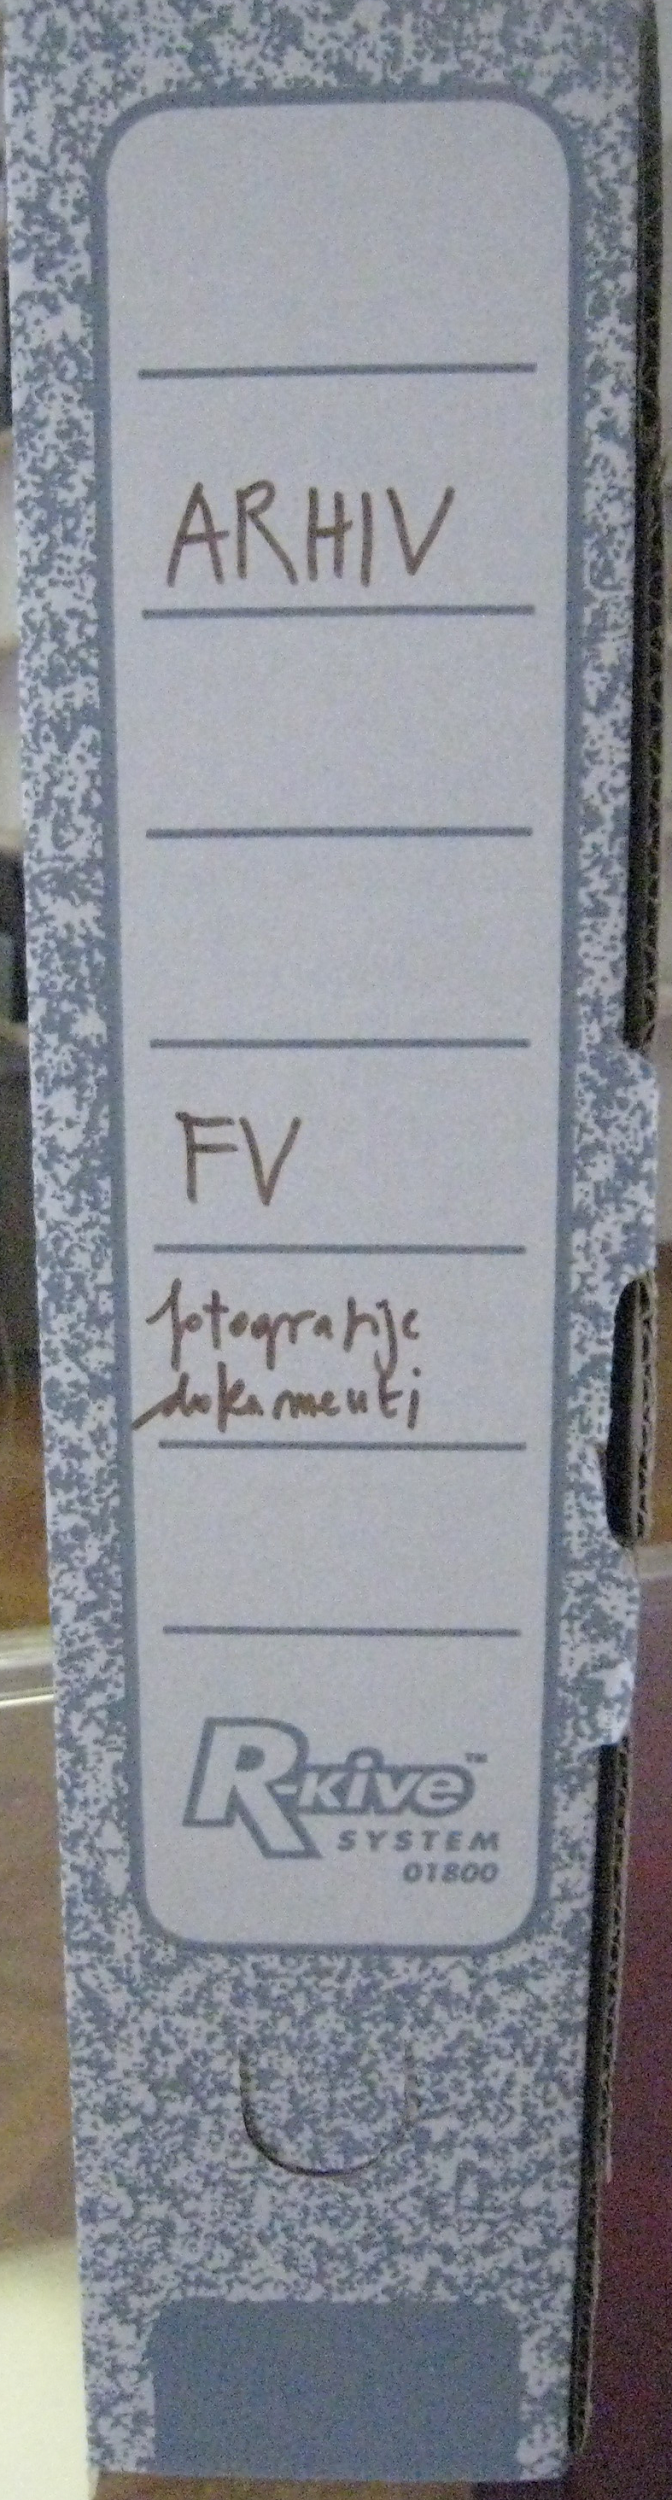 A box with FV 112/15 group archival material: photos, documents at MGLC.